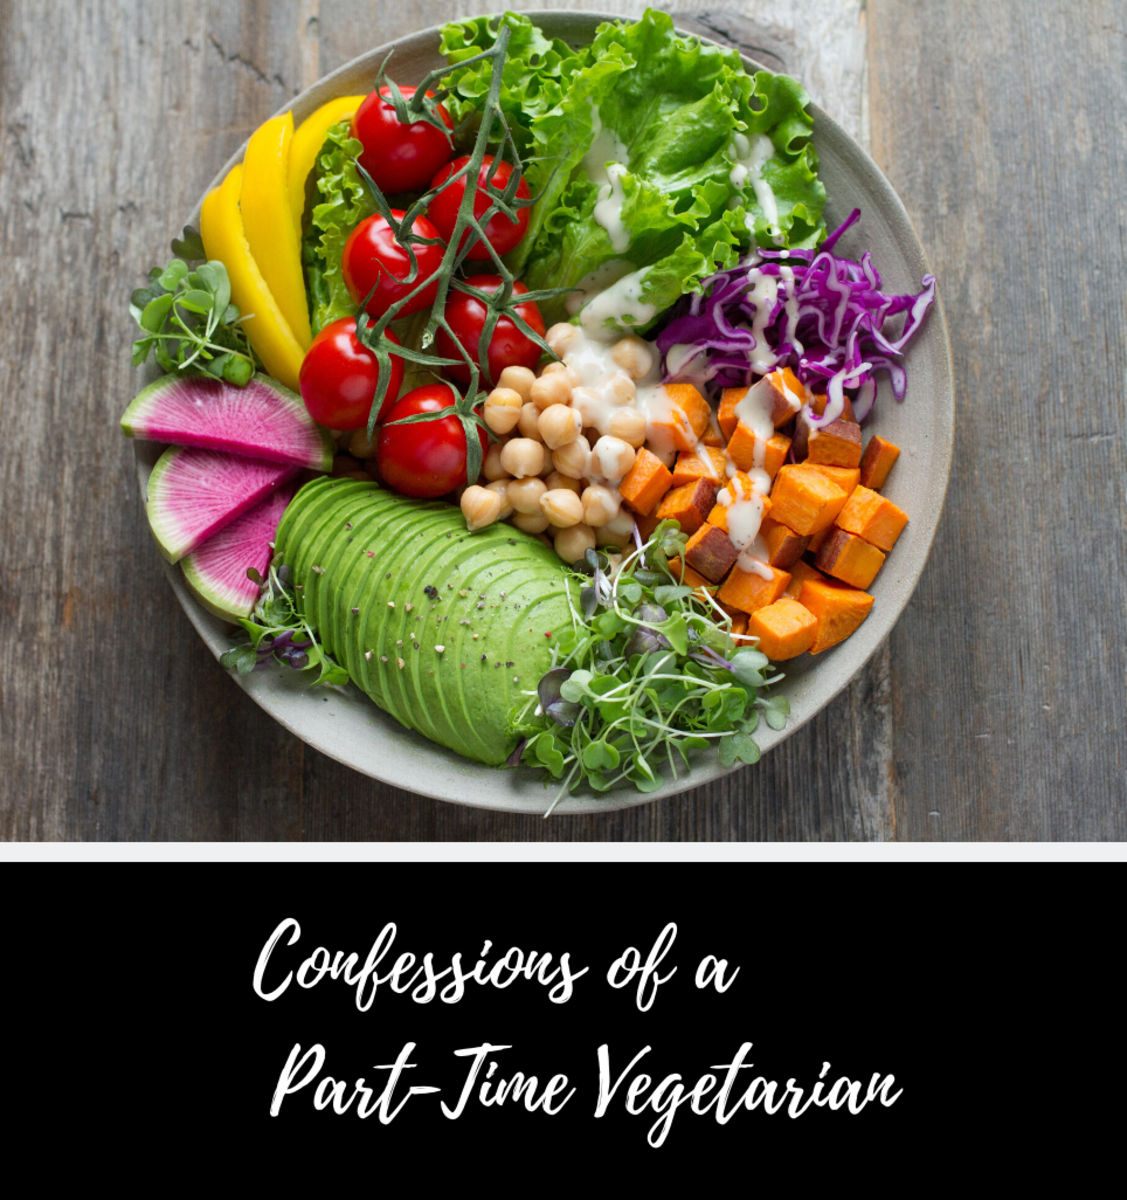 Confessions of a Part-Time Vegetarian